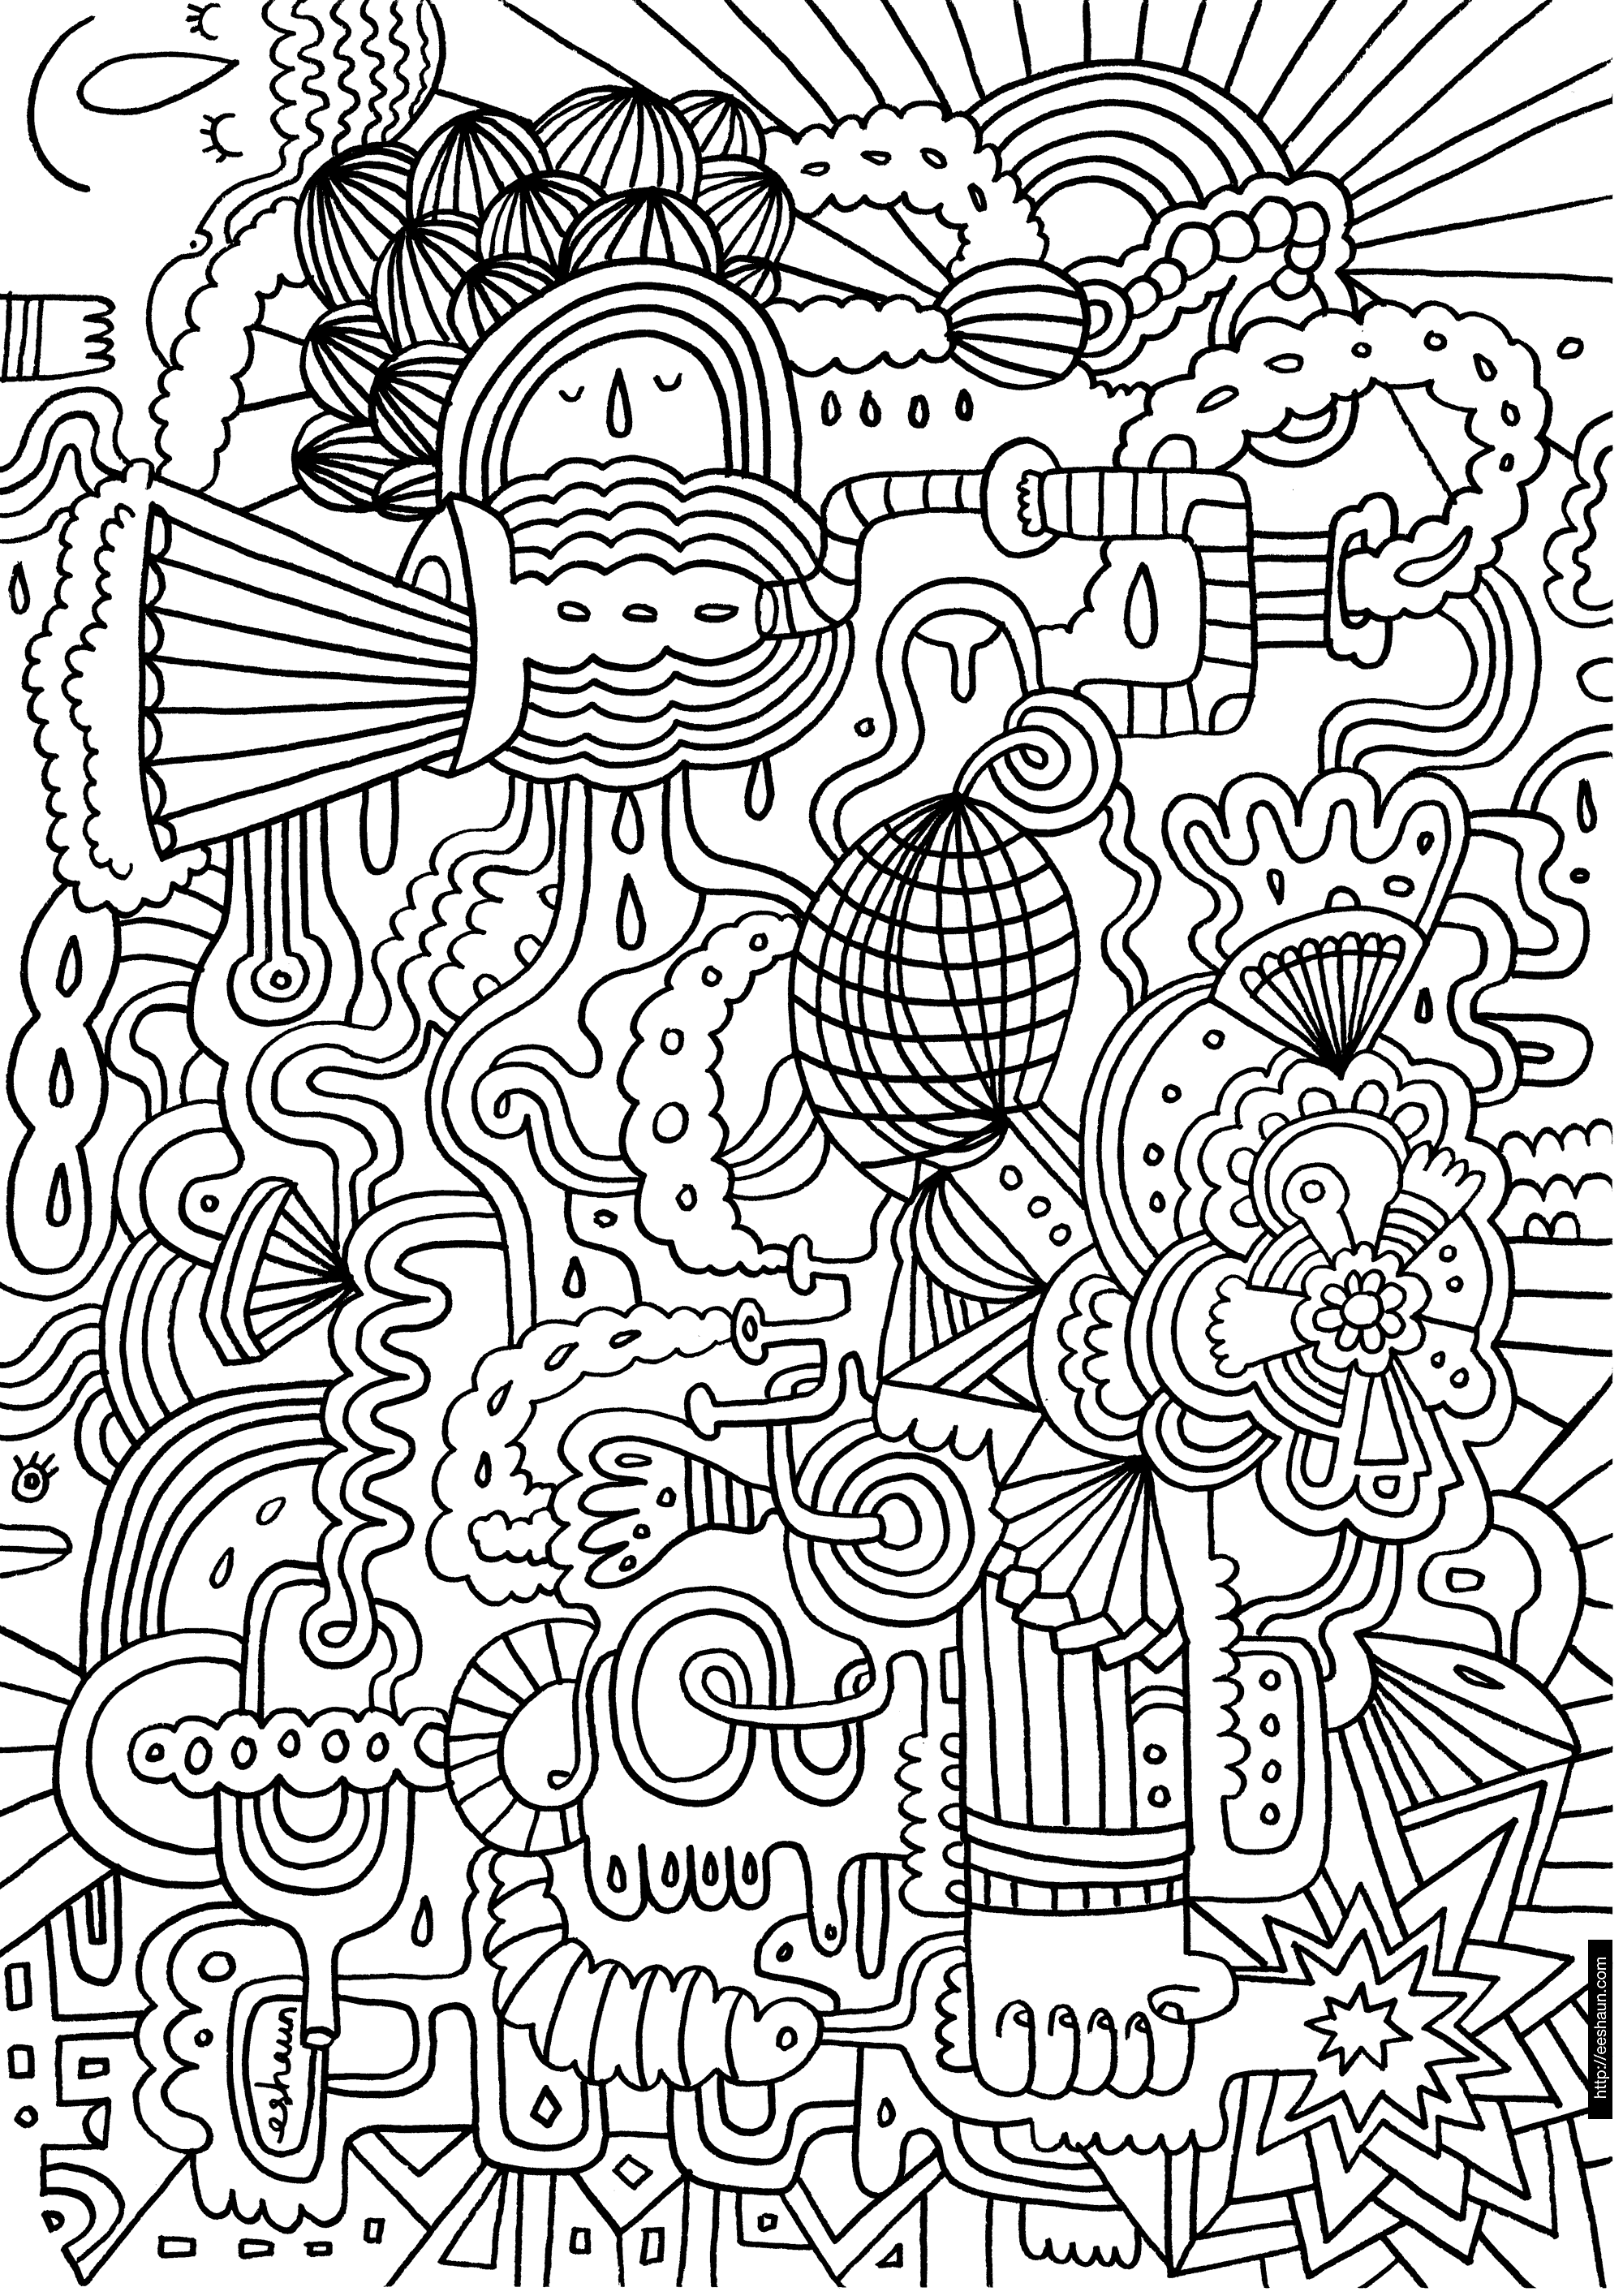 hard coloring pages free large images - Pattern Coloring Books